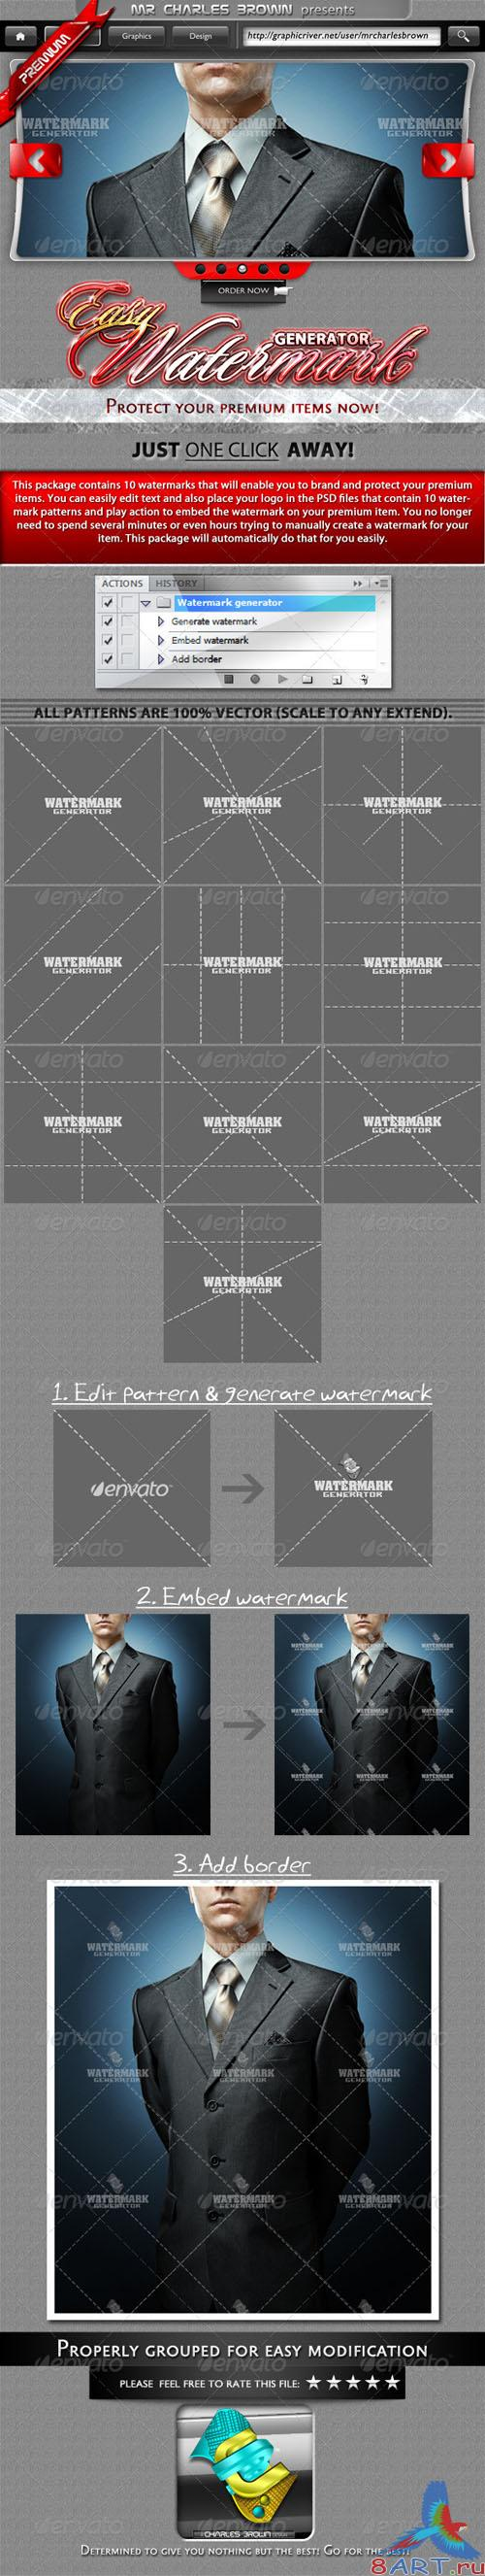 GraphicRiver - Easy Watermark Generator 2488298